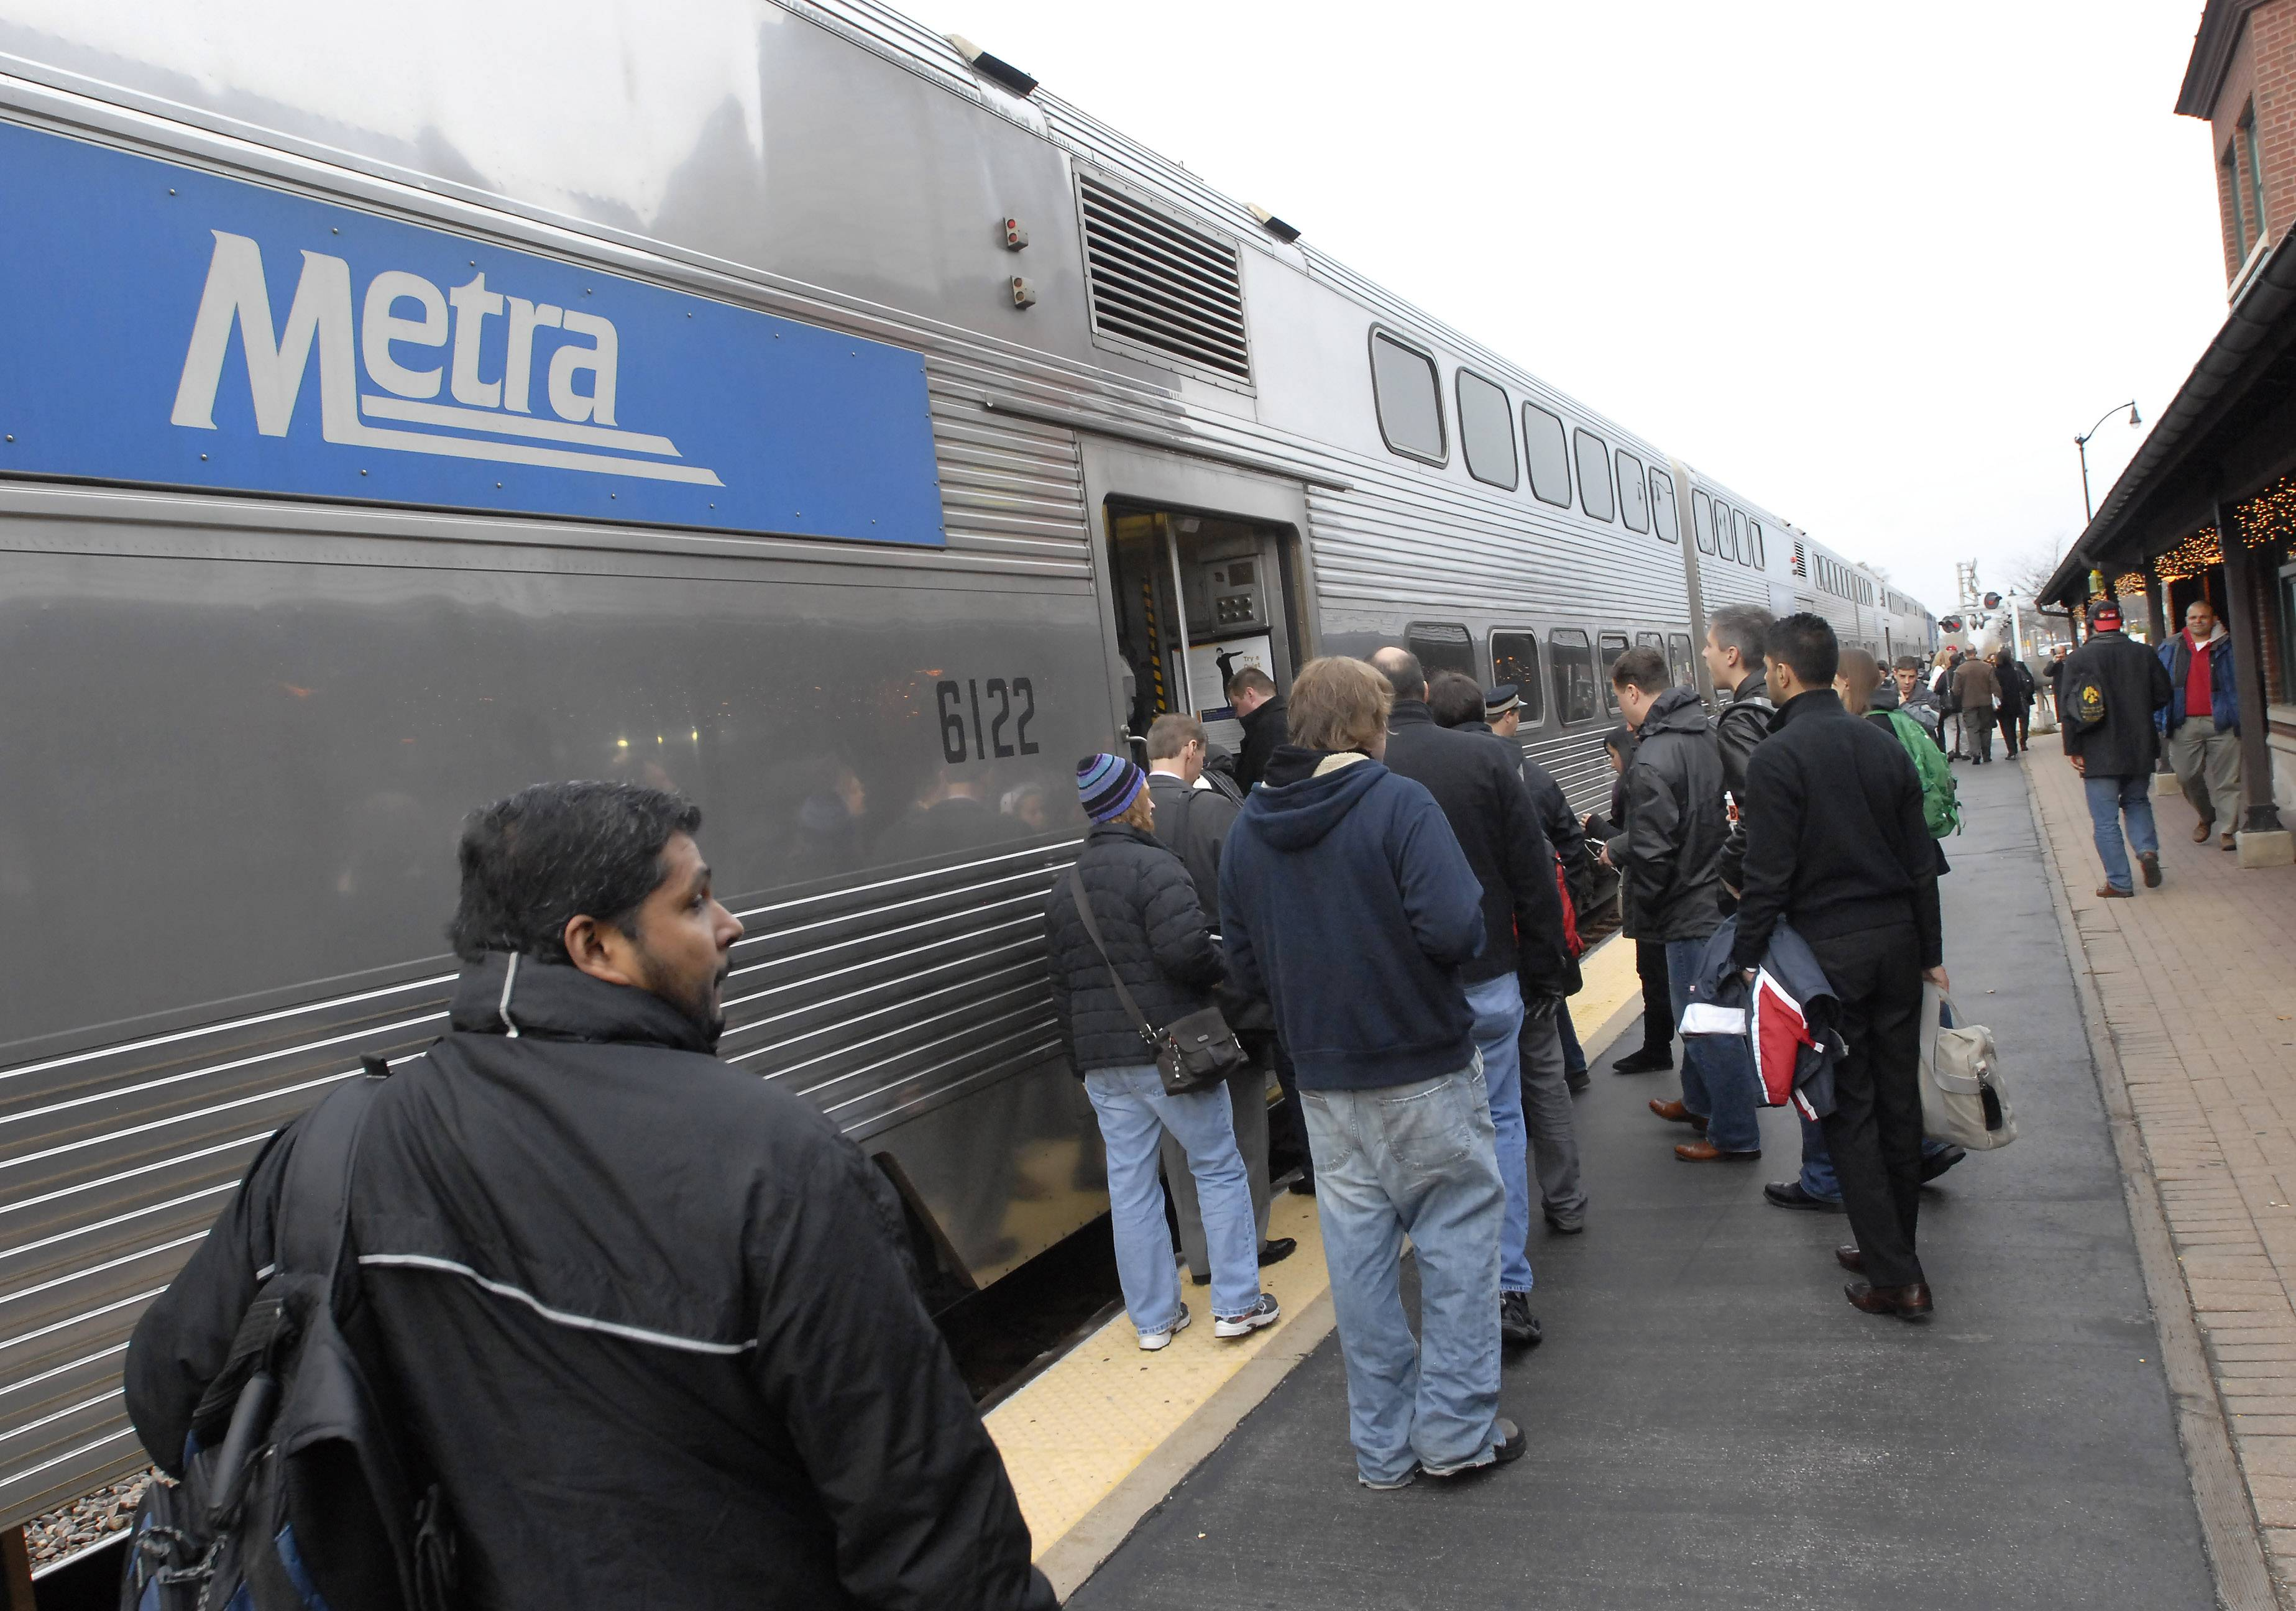 Metra leaders aim to fast-track fare structure changes